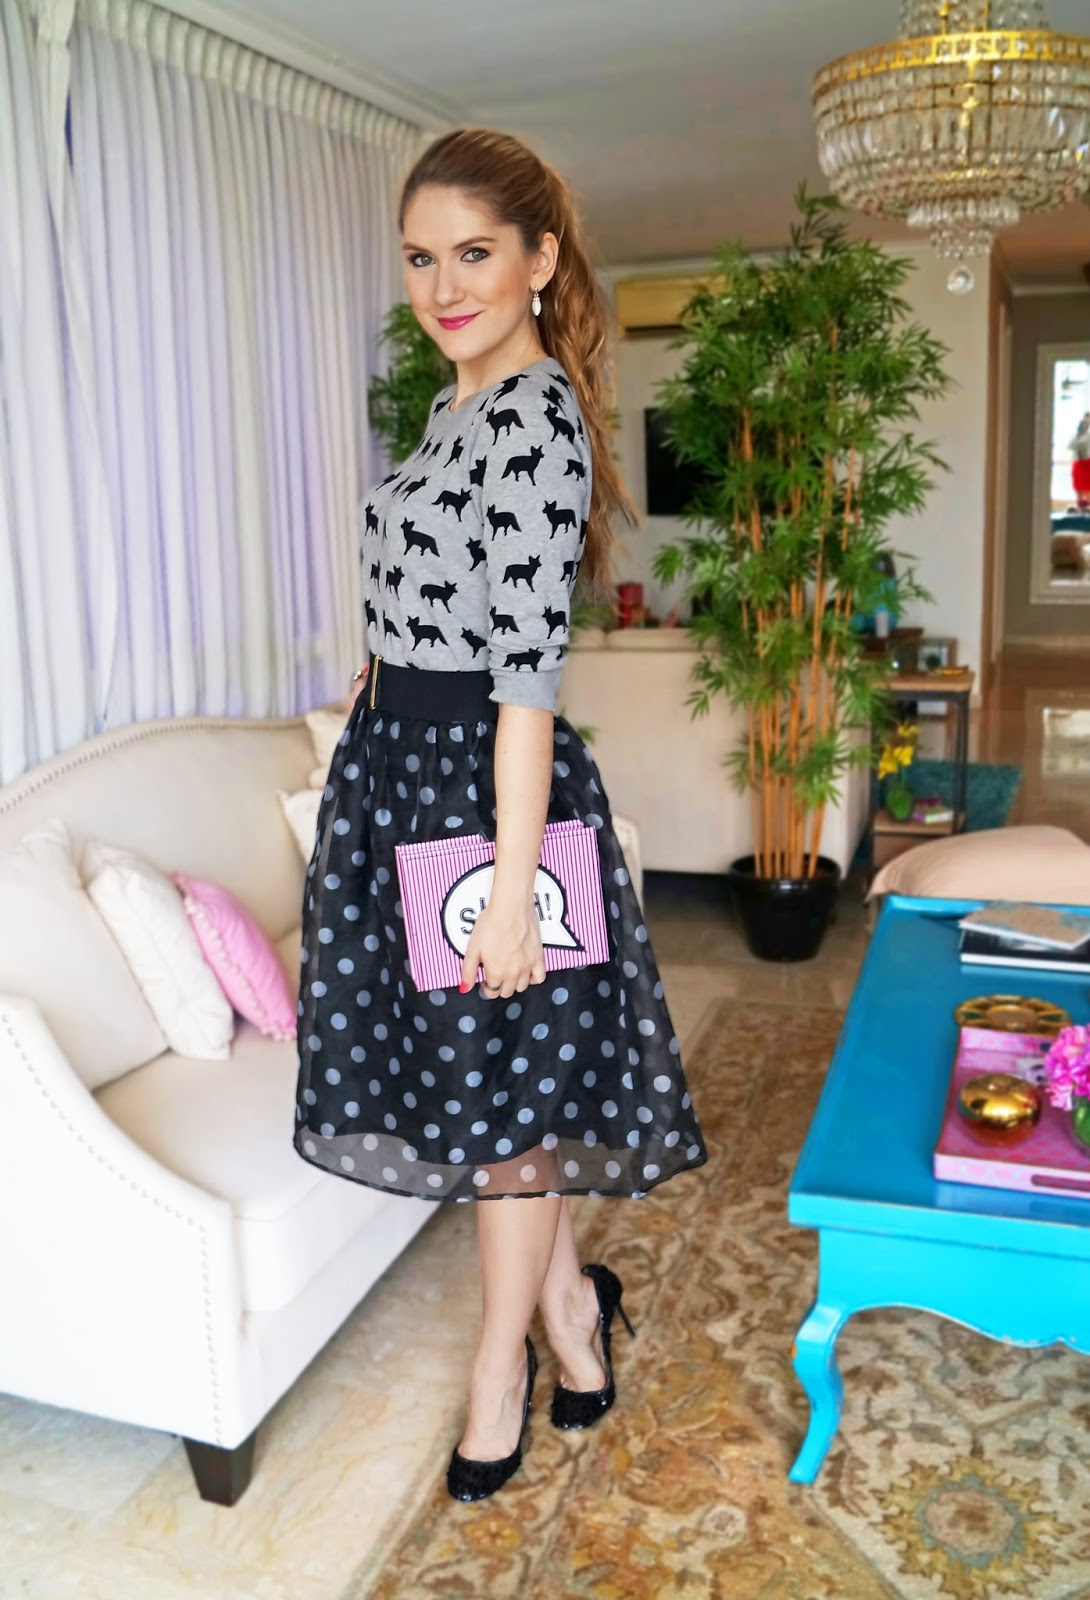 Super Cute outfit mixing patterns